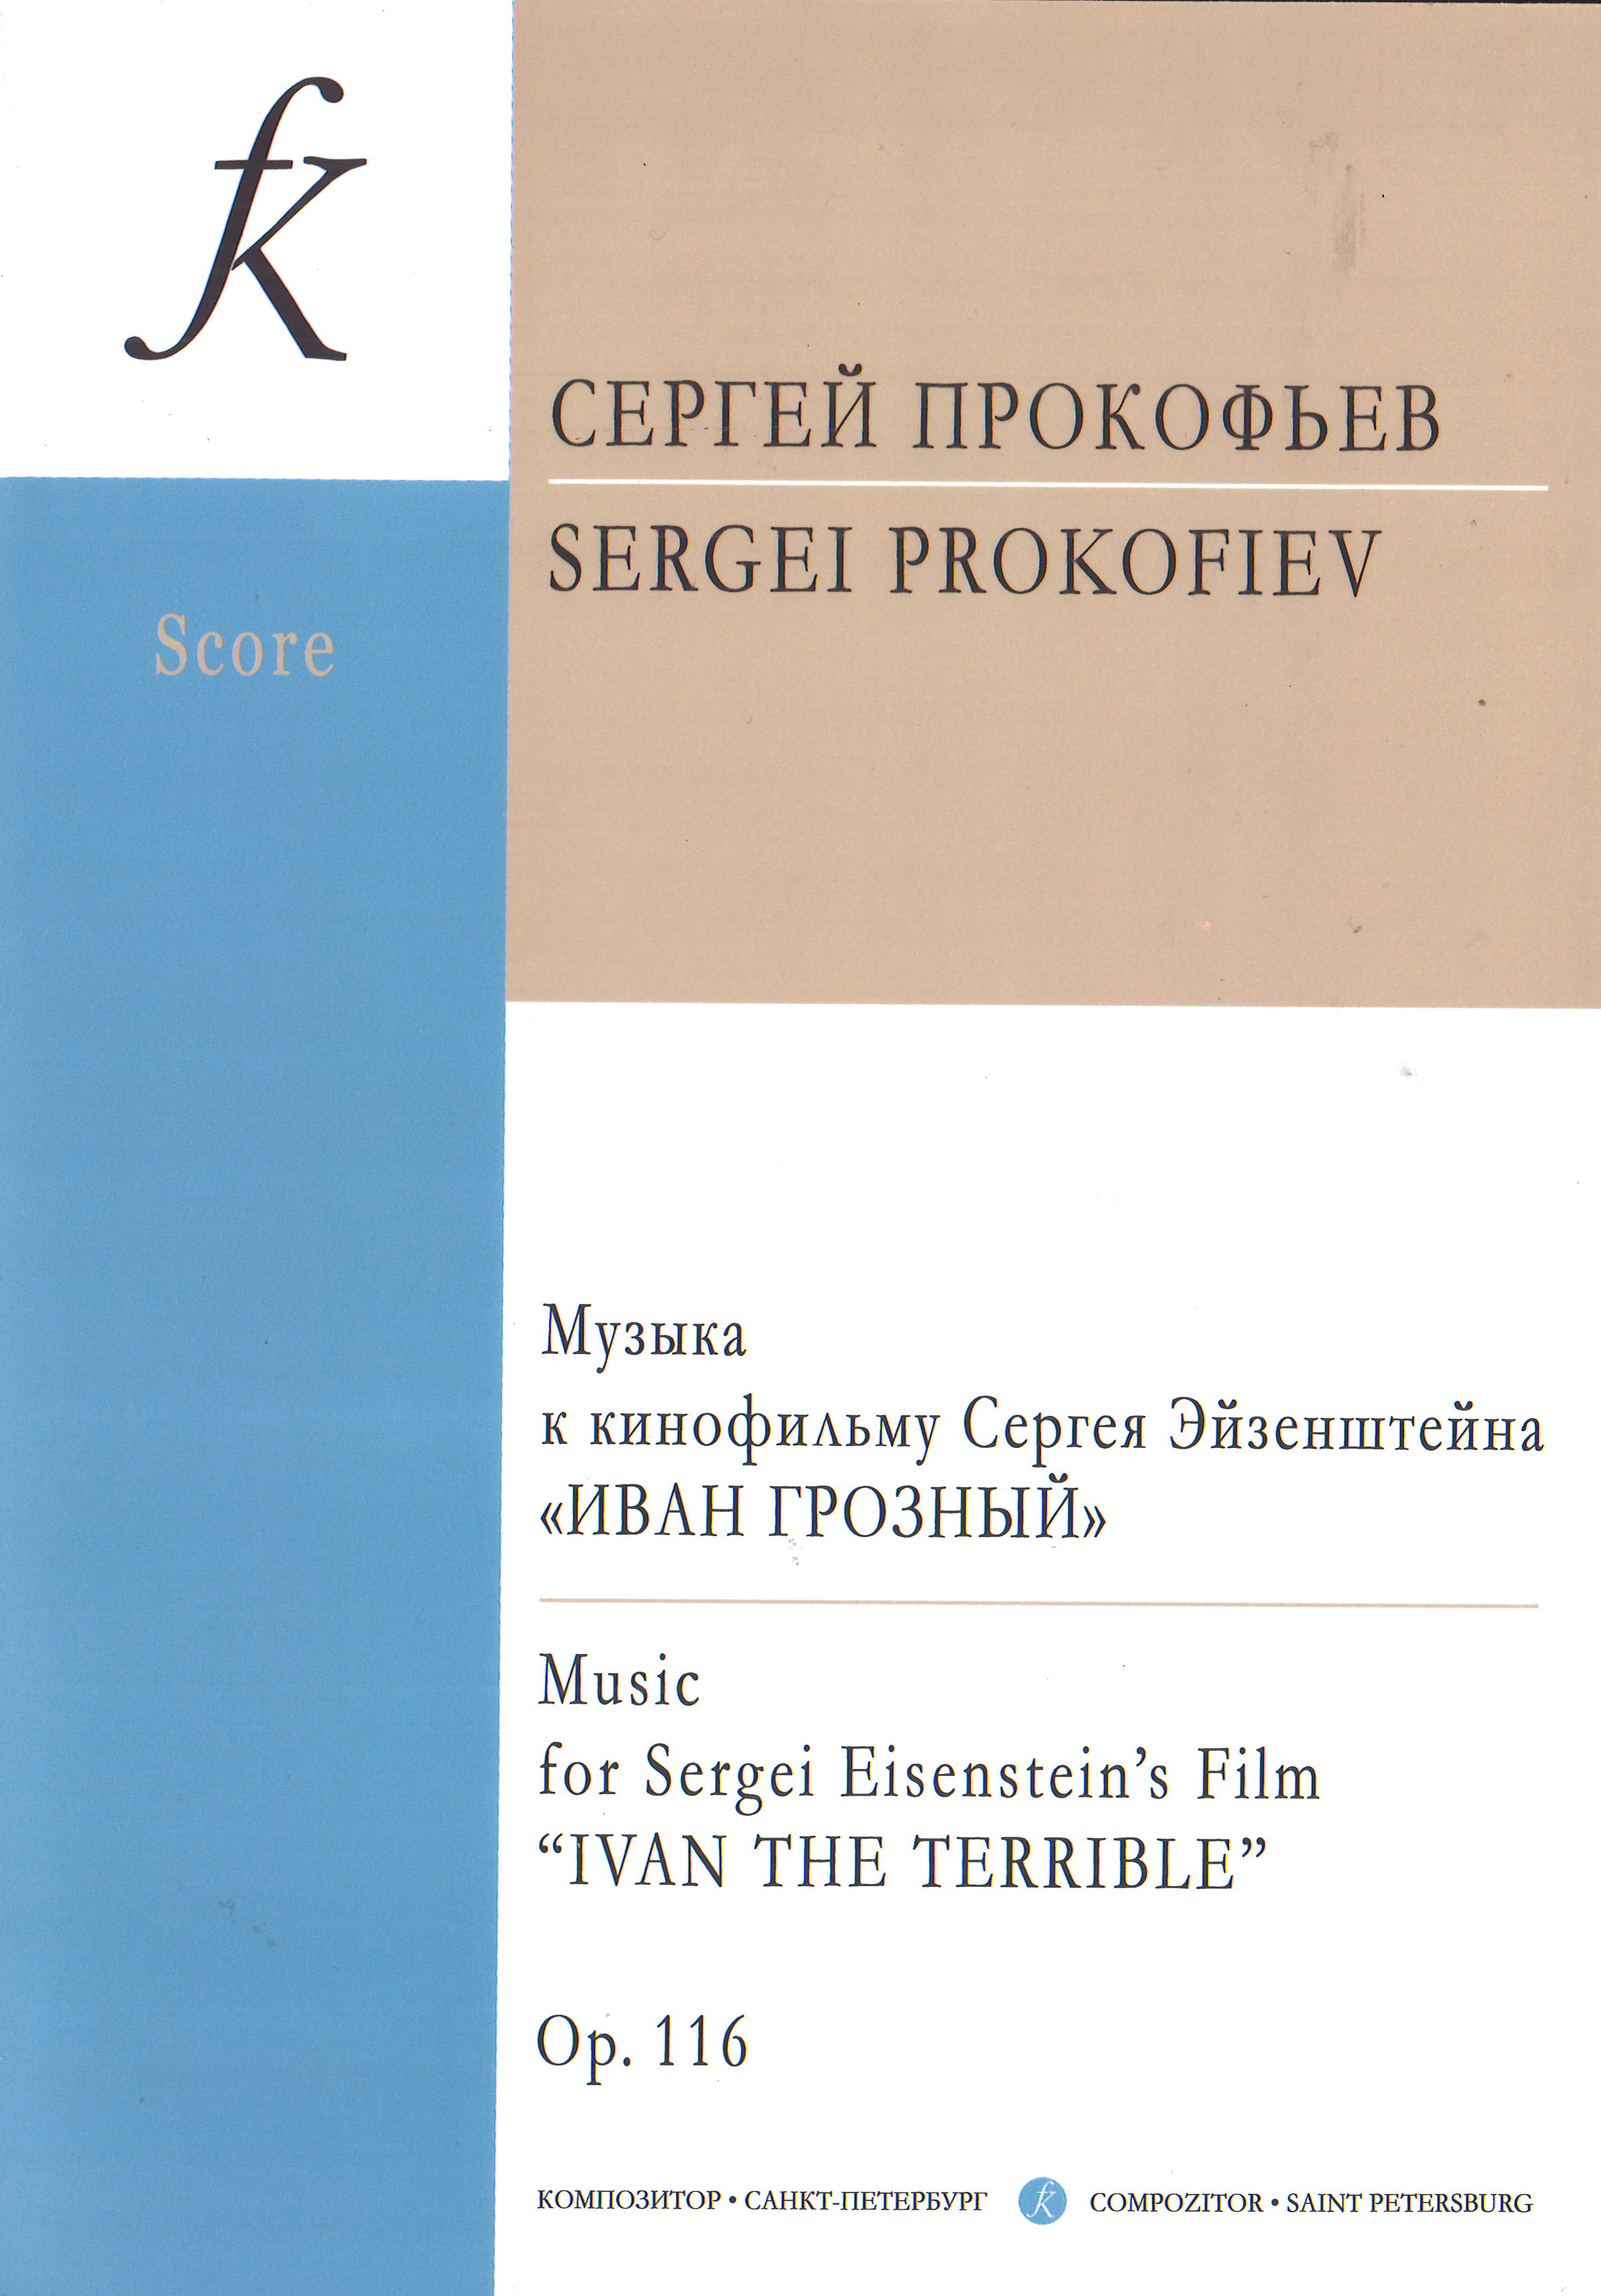 "Music for Sergei Eisenstein's Film ""Ivan the Terrible"". Score. Urtext. Op. 116"